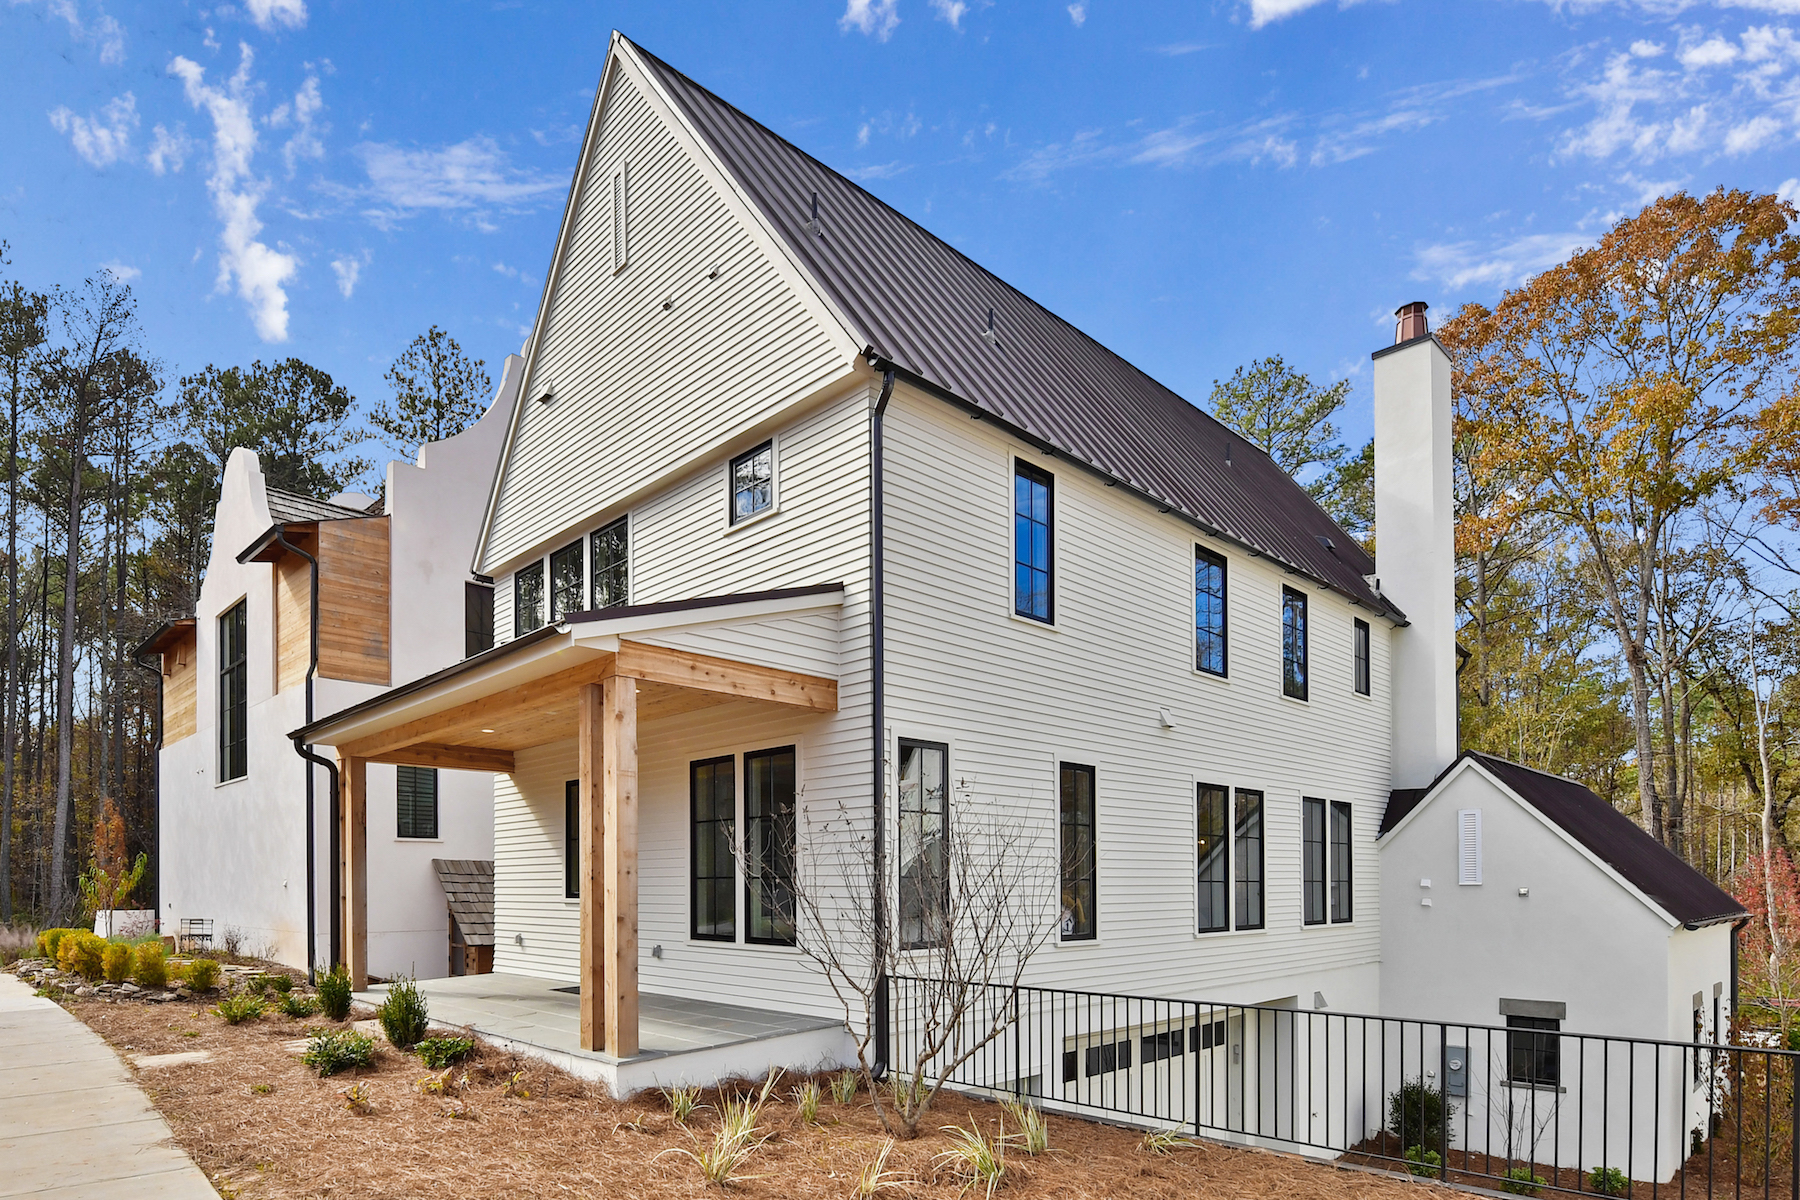 White three-story farmhouse-style home with small covered front porch.